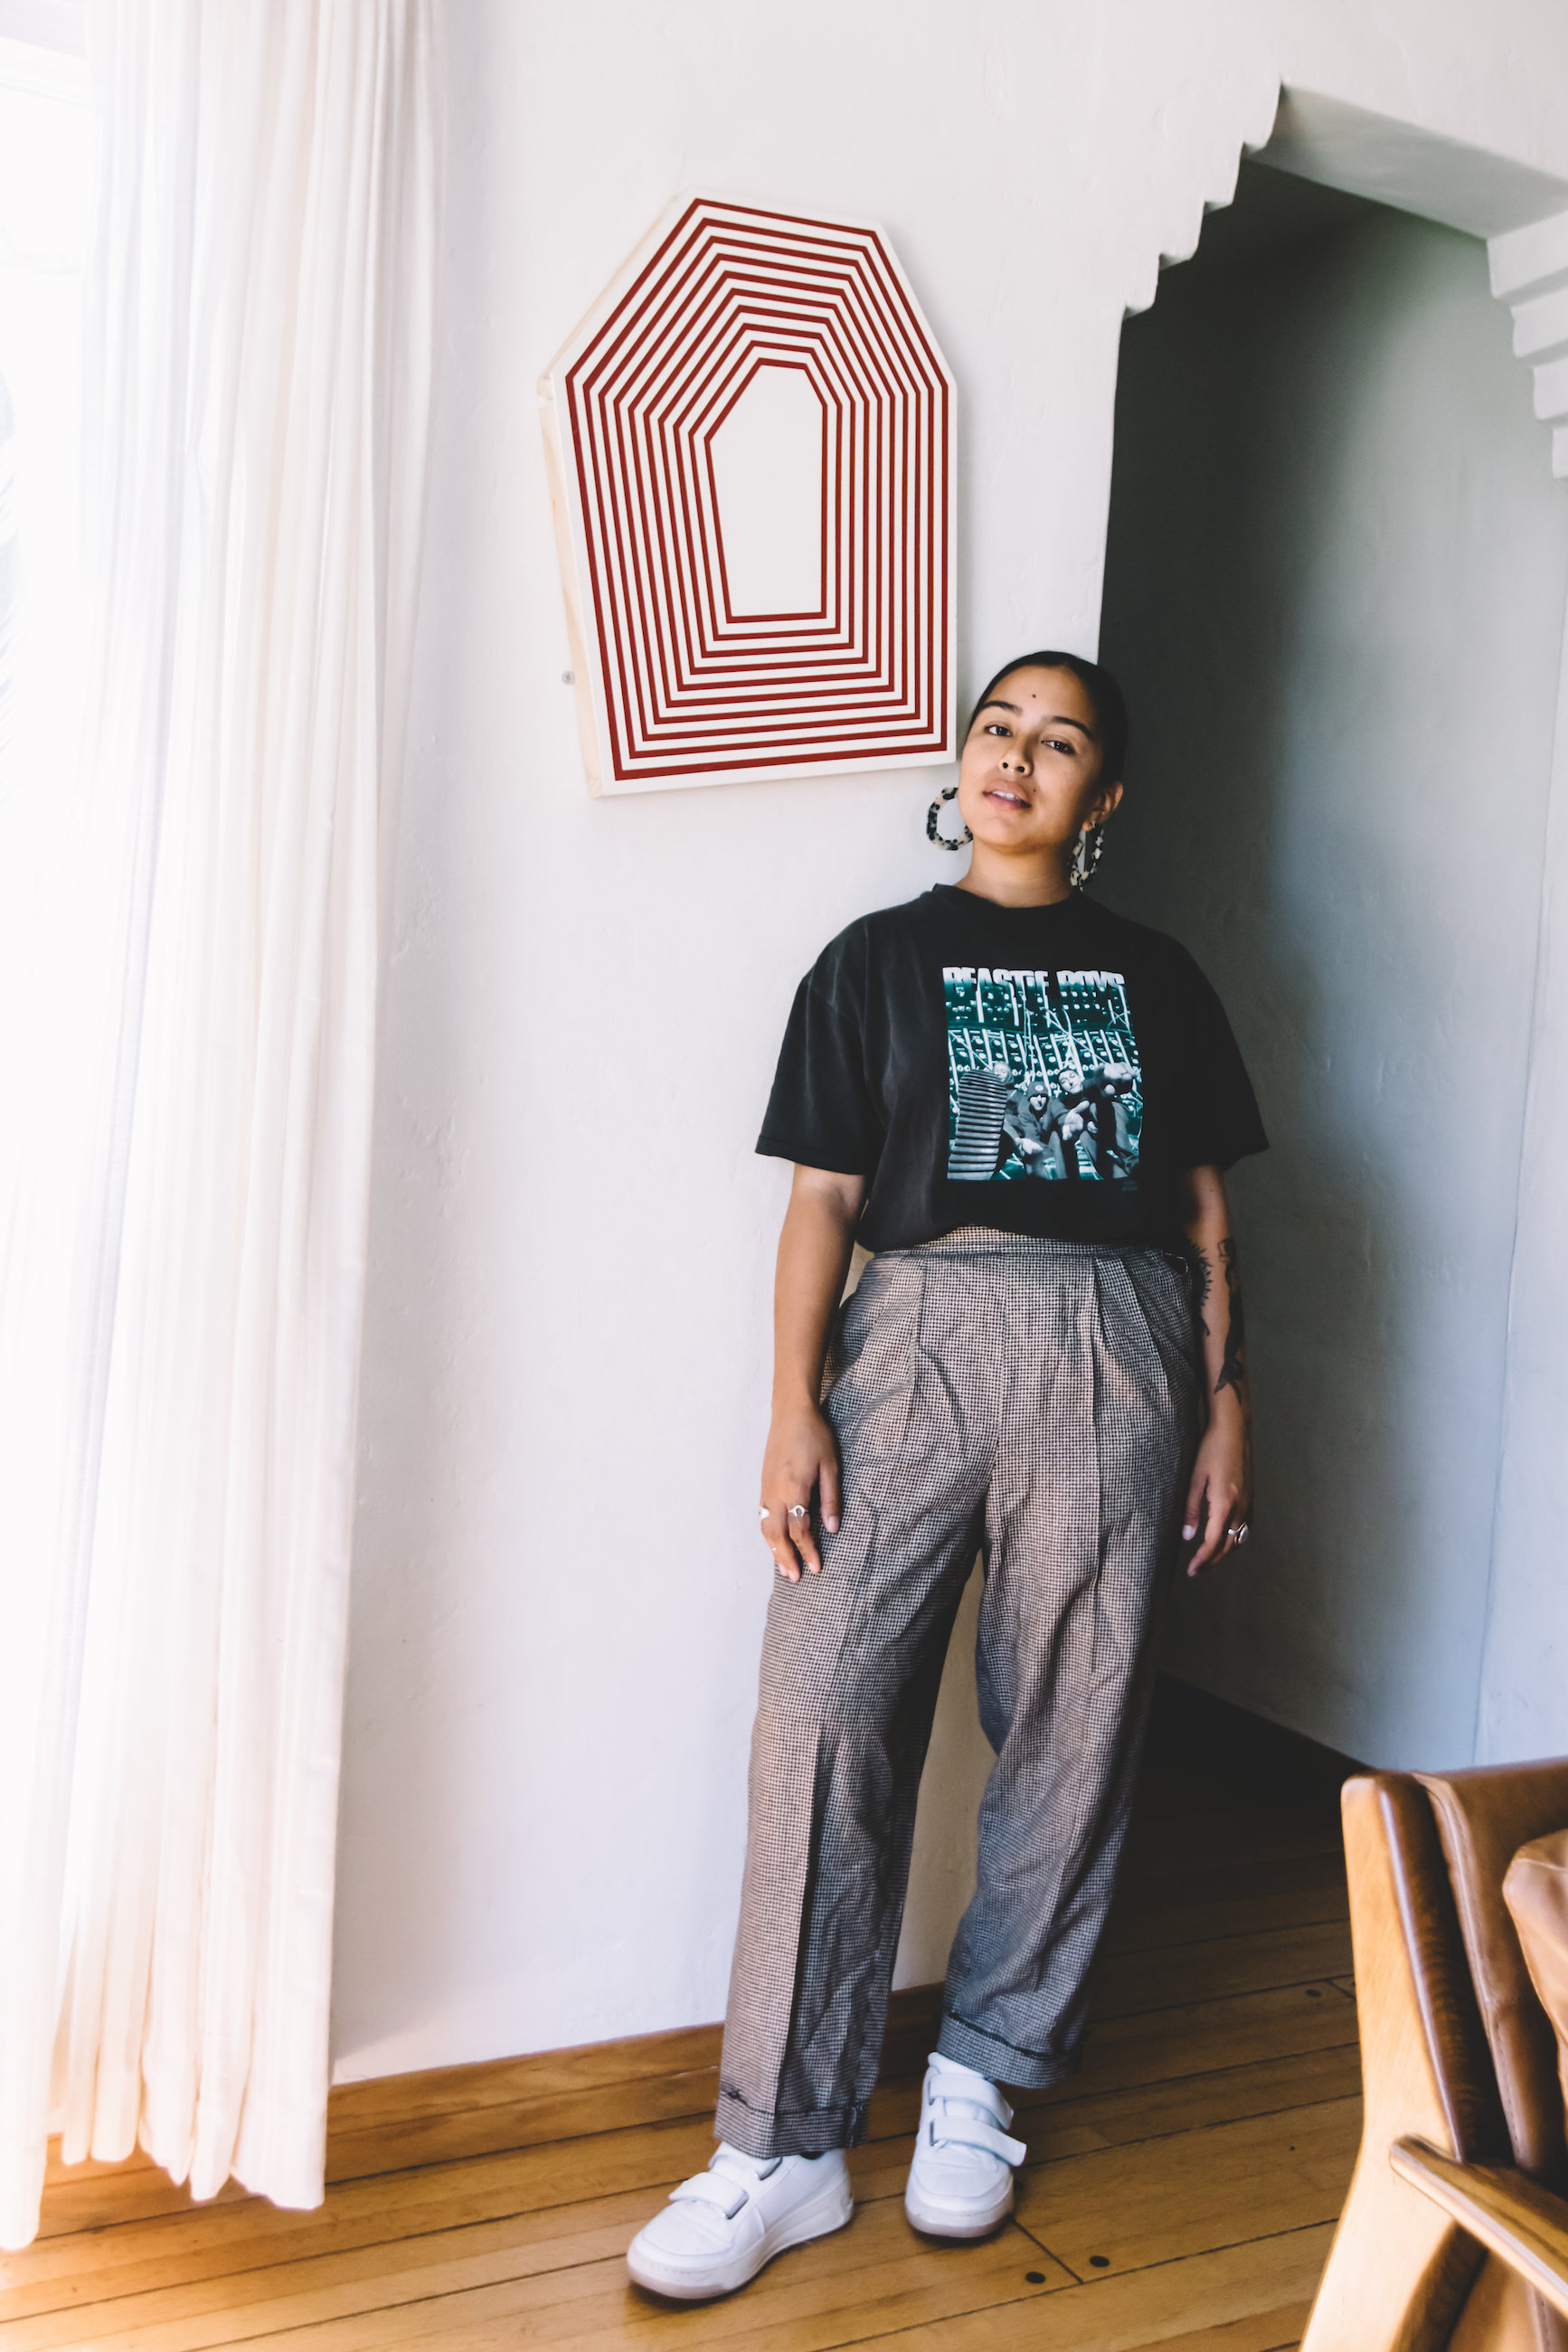 Vintage outfit inspiration - A Week Of Super-Chill Conscious Fashion With Isadora Alvarez, Founder Of Back Beat Rags on The Good Trade